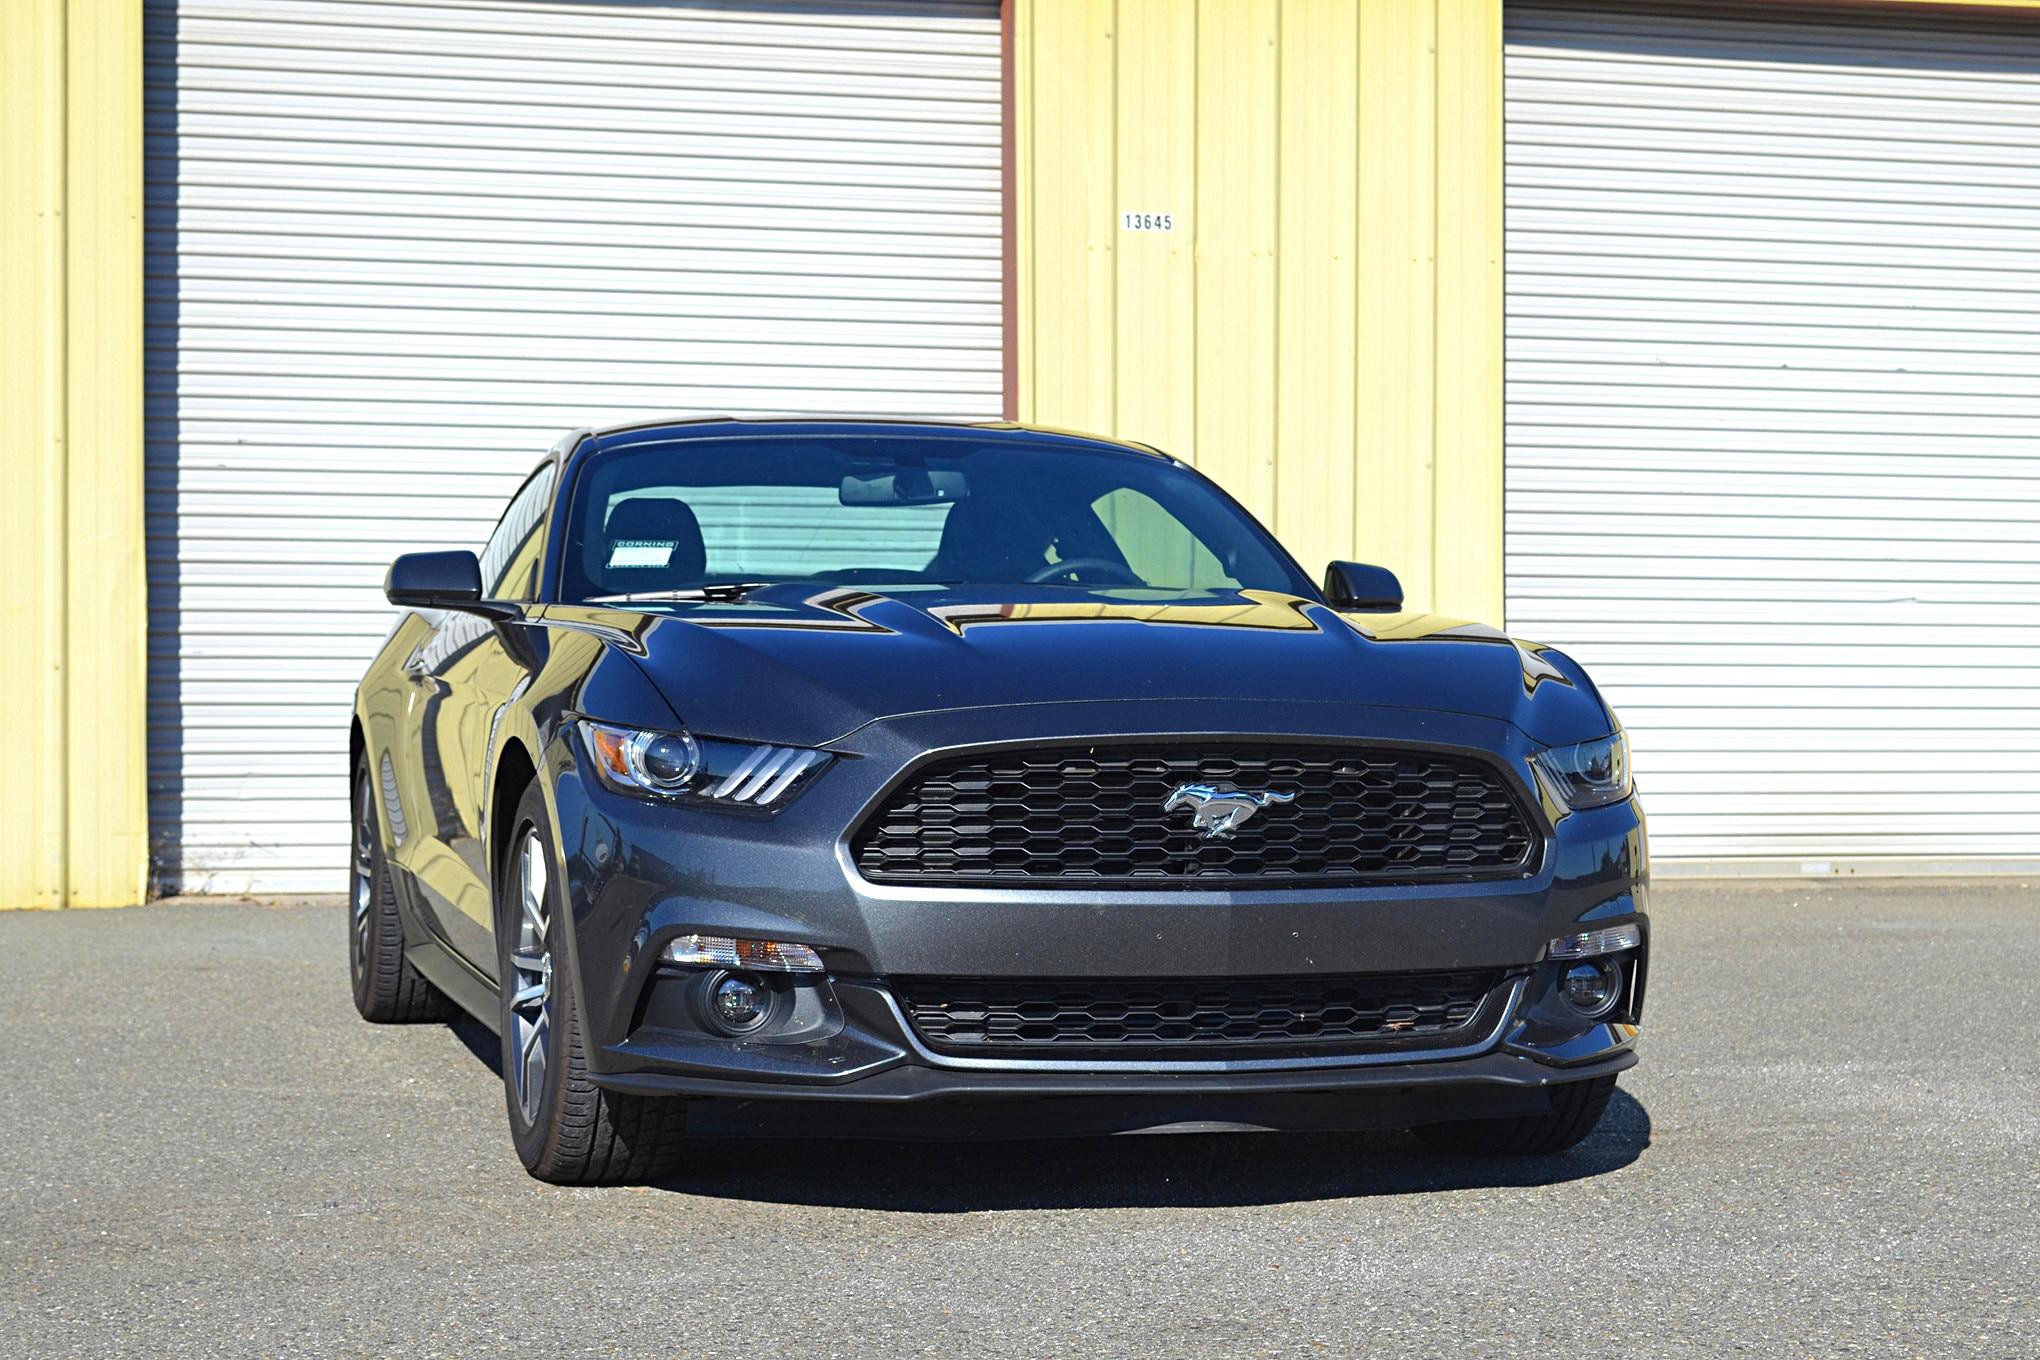 027_Ecoboost_Mustang_dragstrip_front.JPG